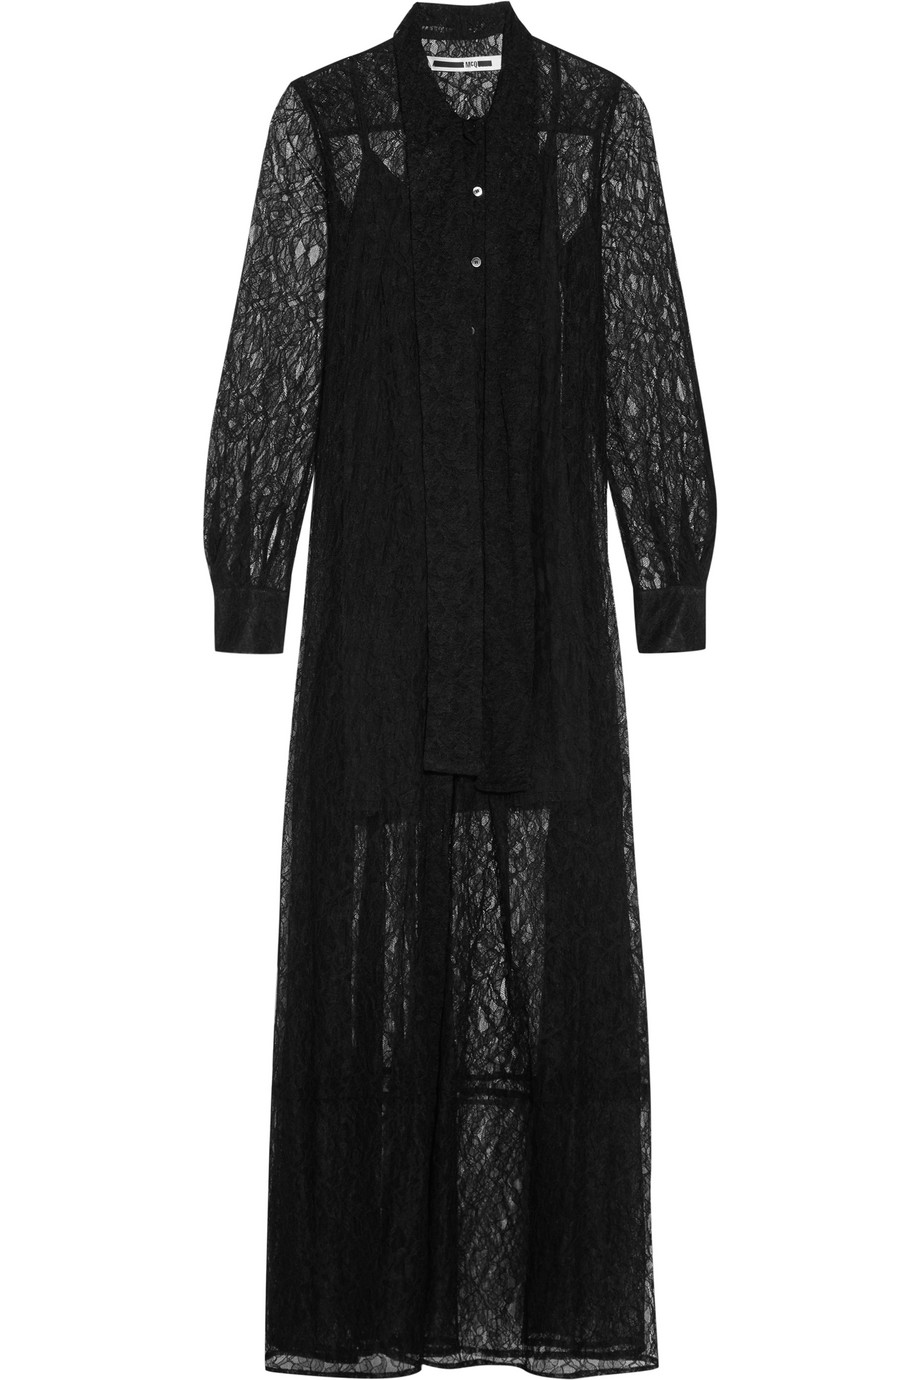 Pussy-Bow Lace Maxi Dress, Mcq Alexander Mcqueen, Black, Women's, Size: 38